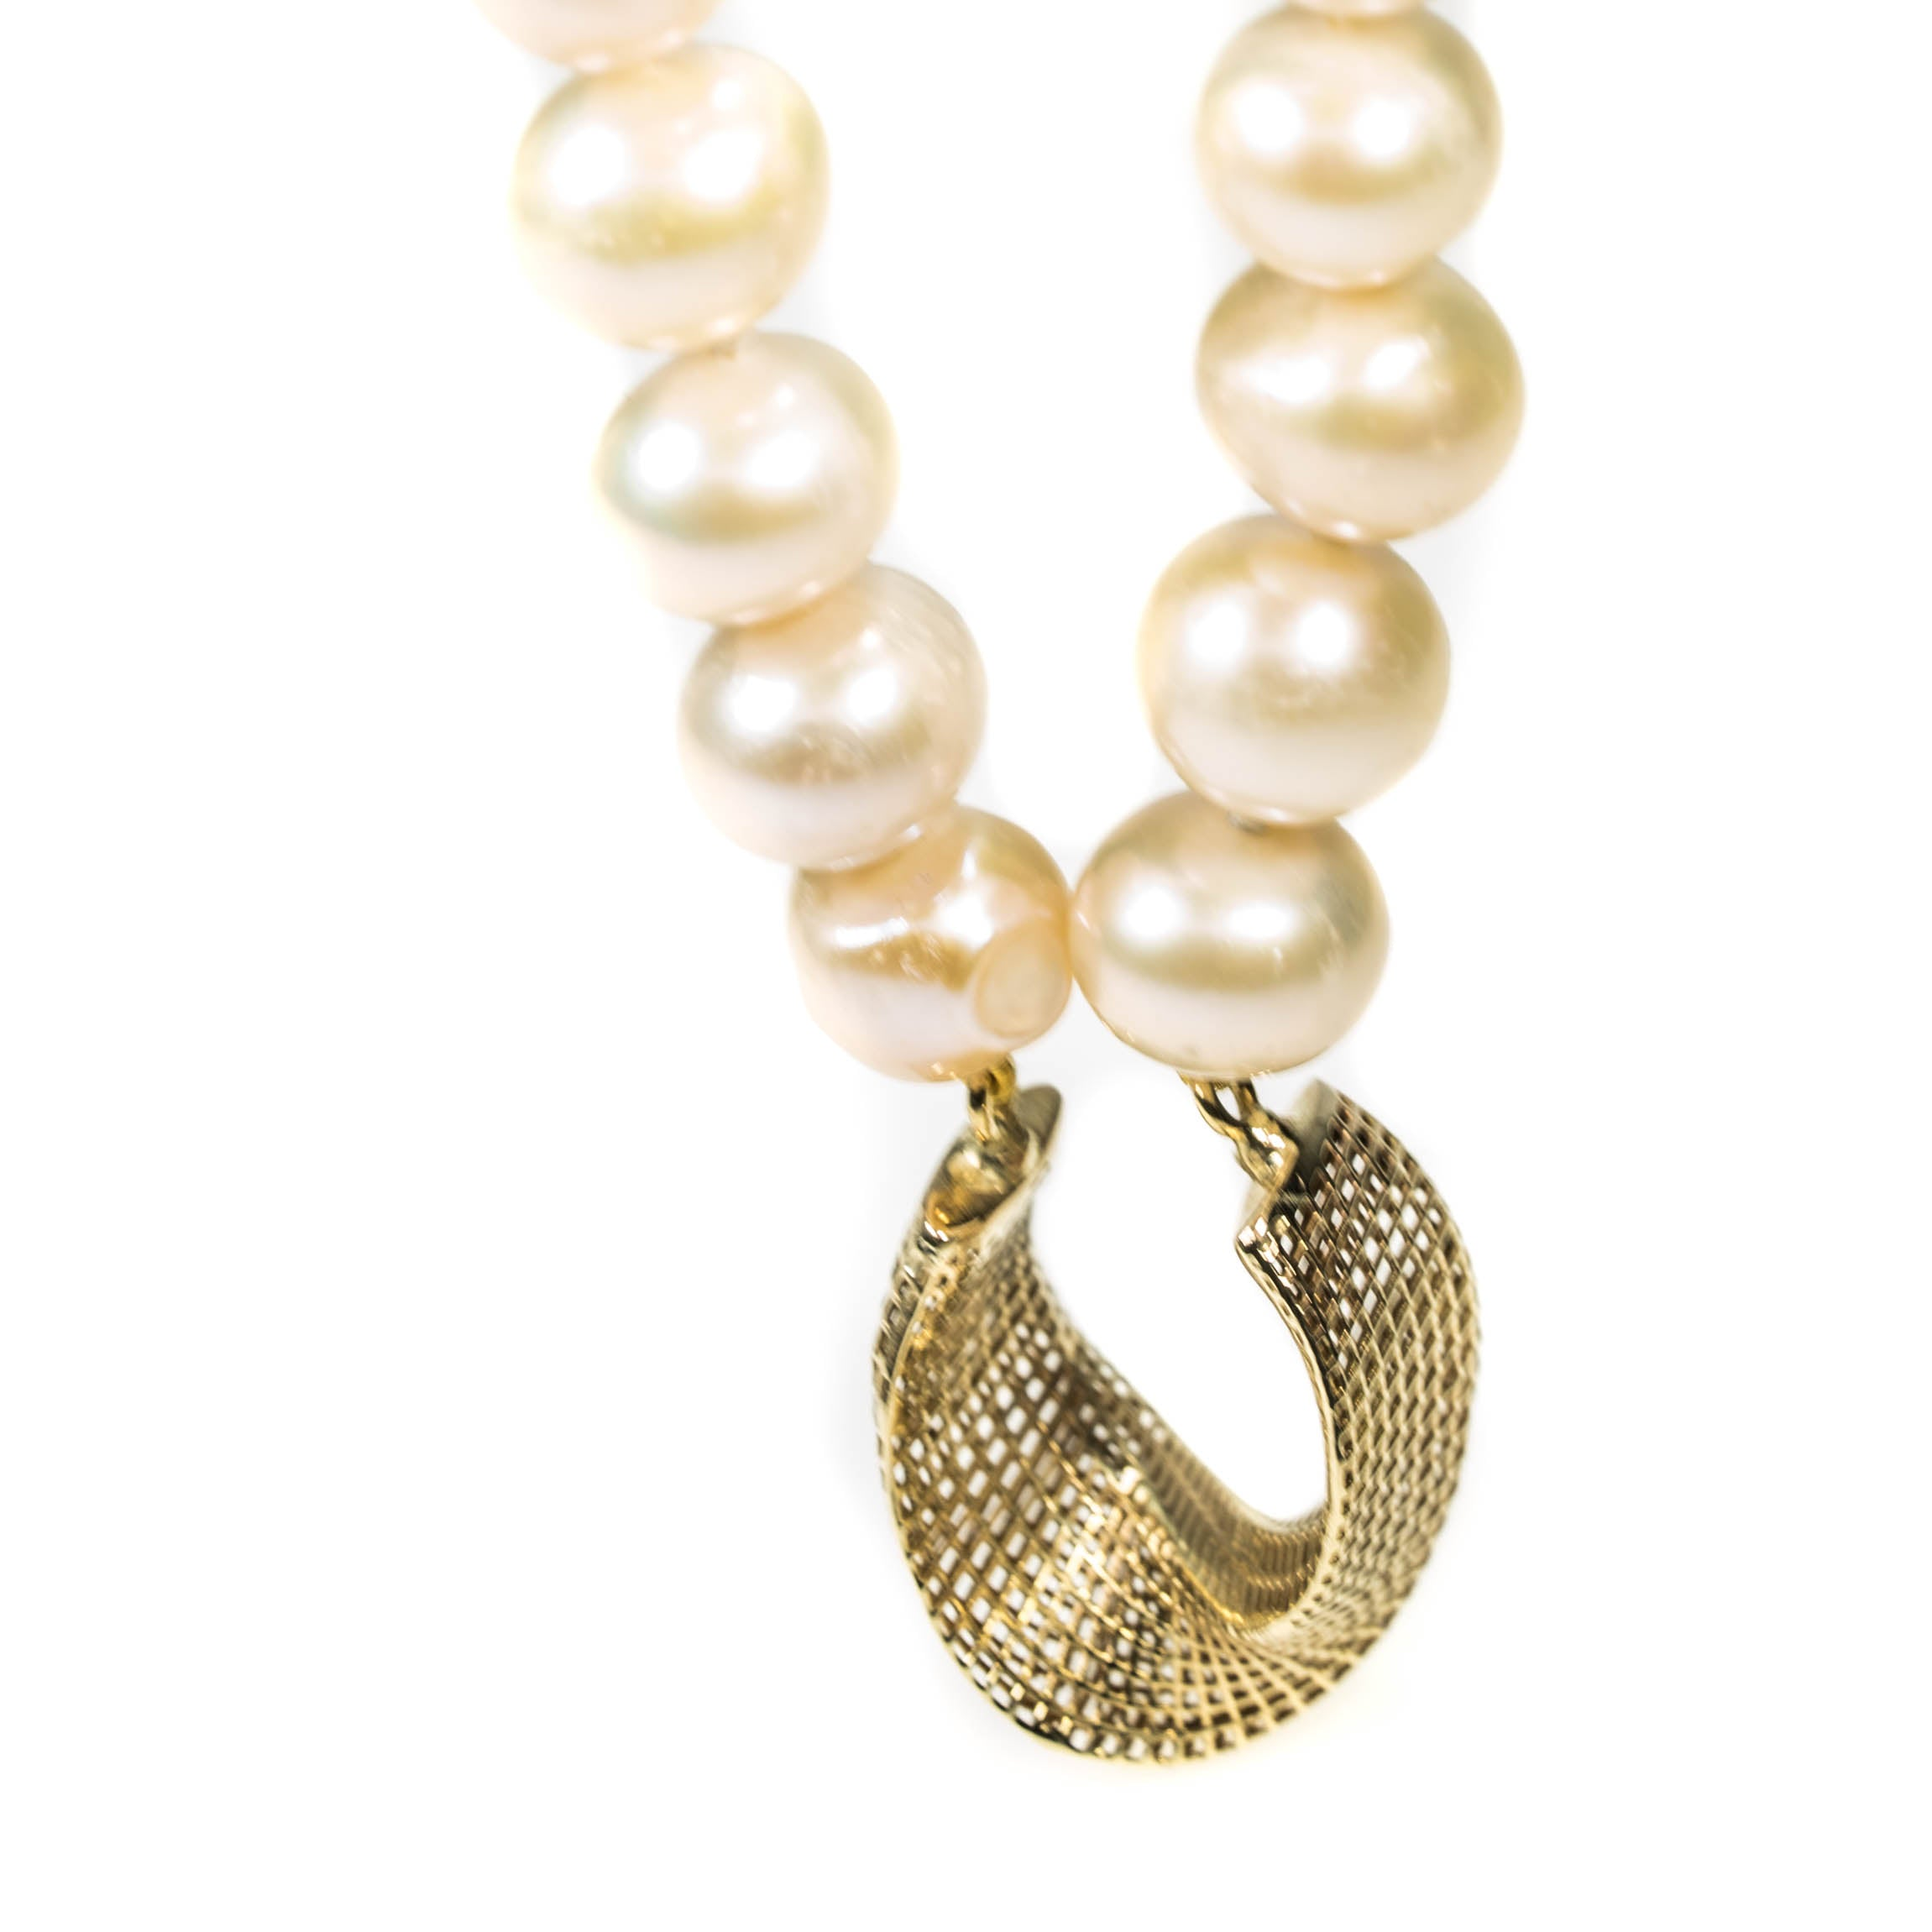 14K - 11mm Freshwater Pearls - mobius center piece